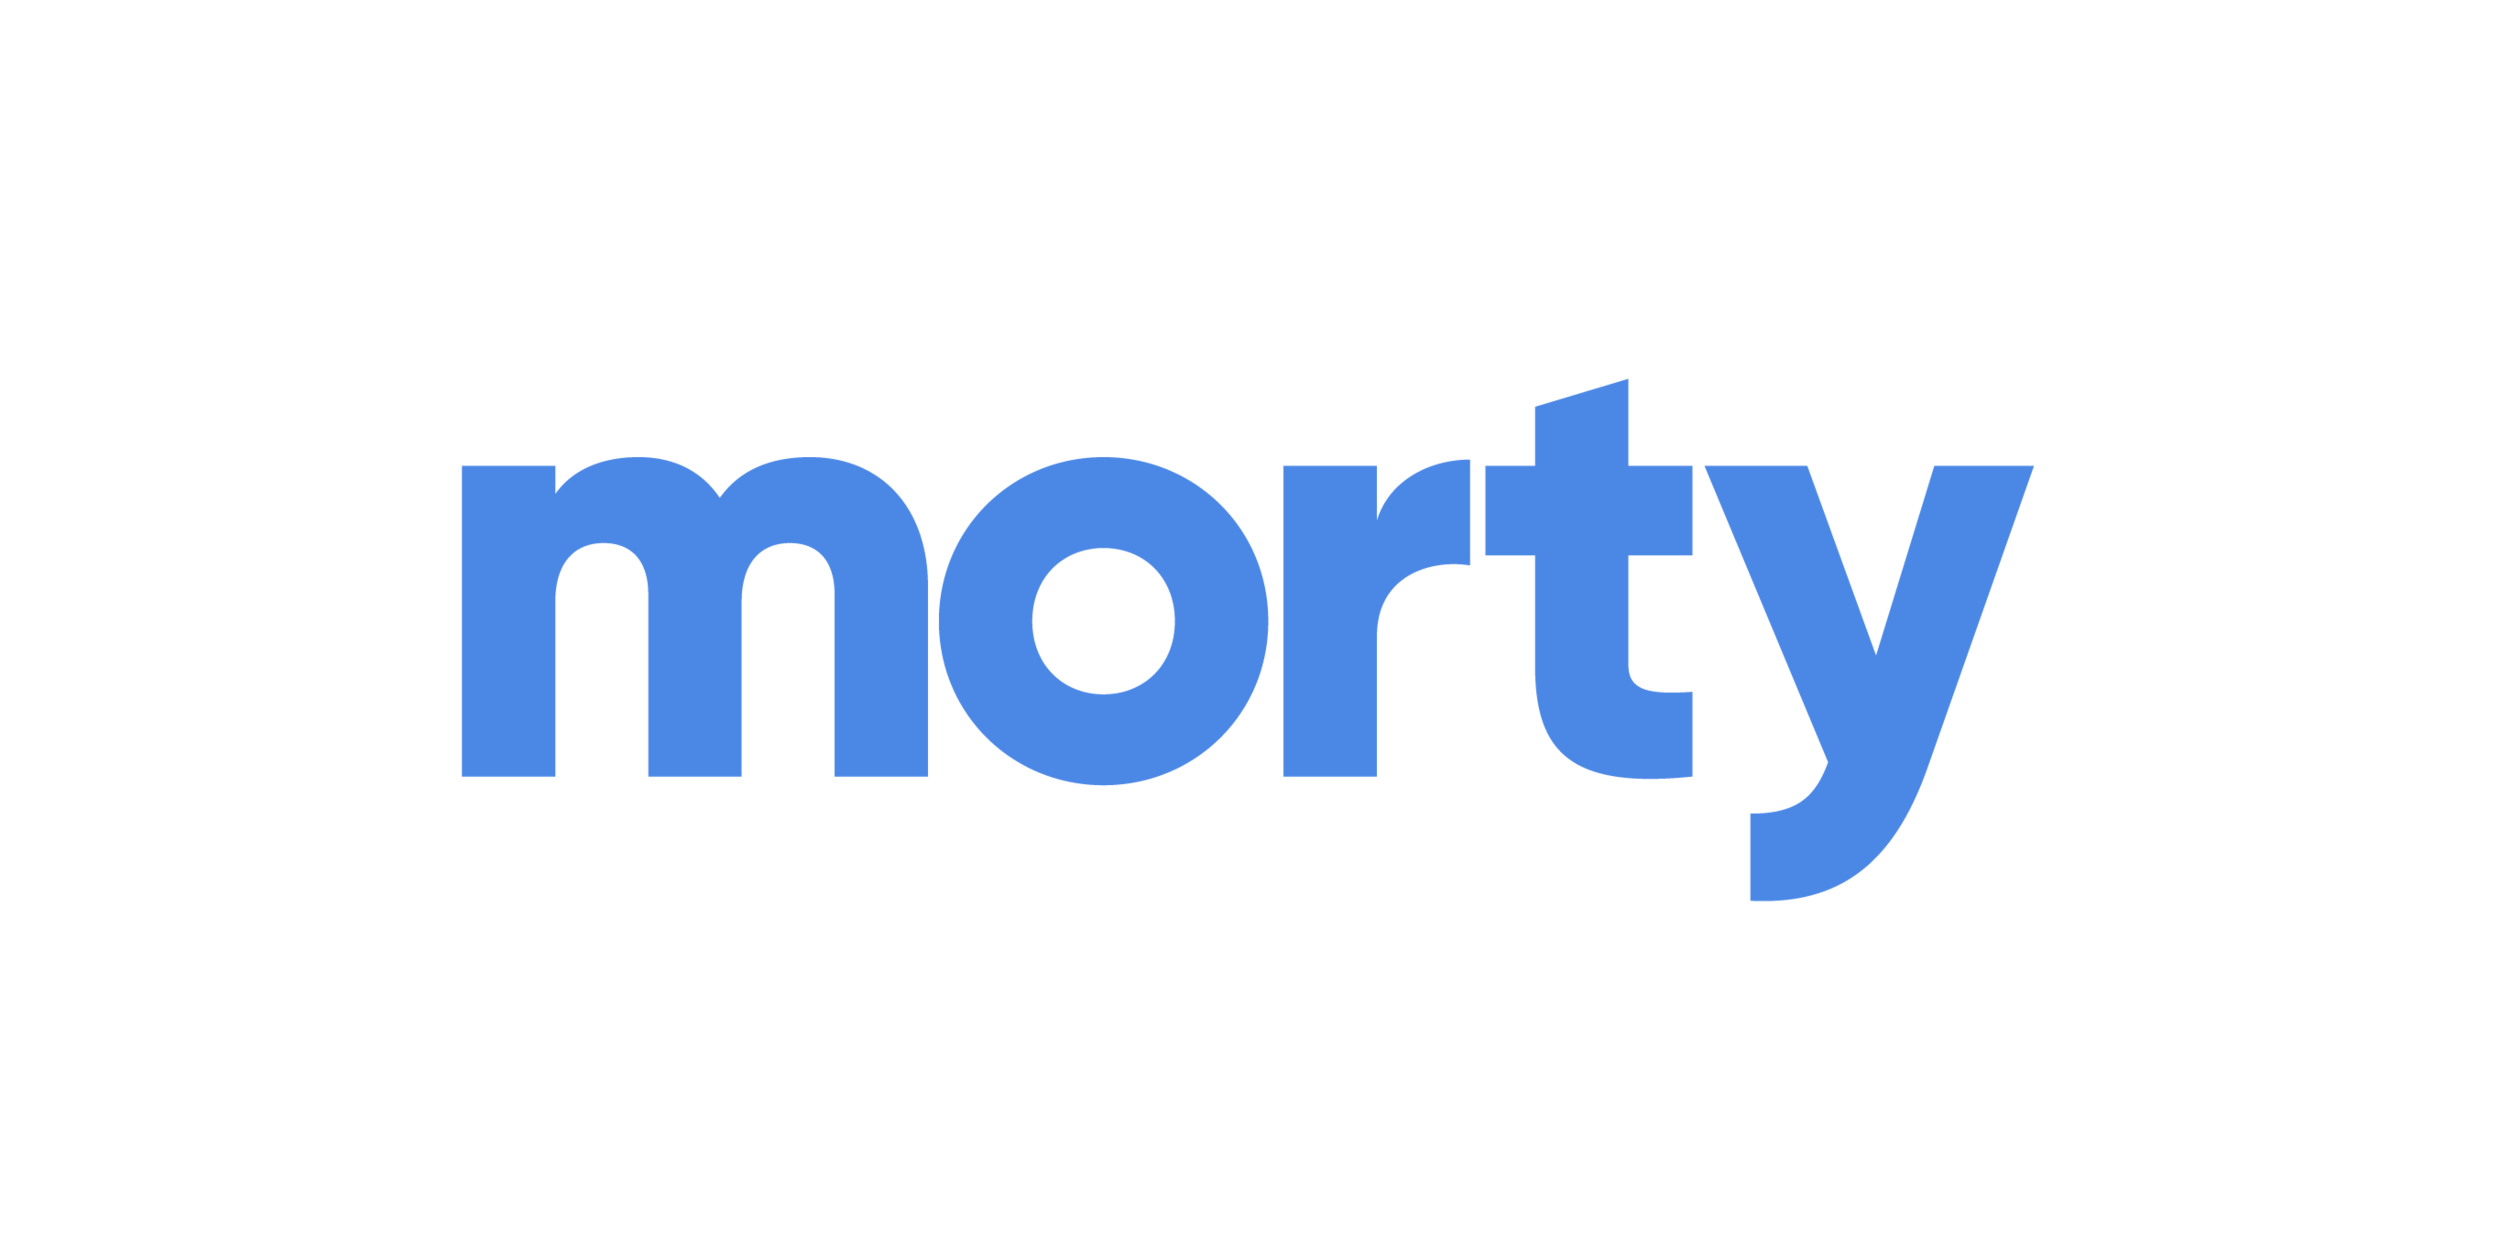 Morty Morty is a mortgage marketplace that allows homebuyers to shop, compare - and close - any loan product from any lender, completely online.